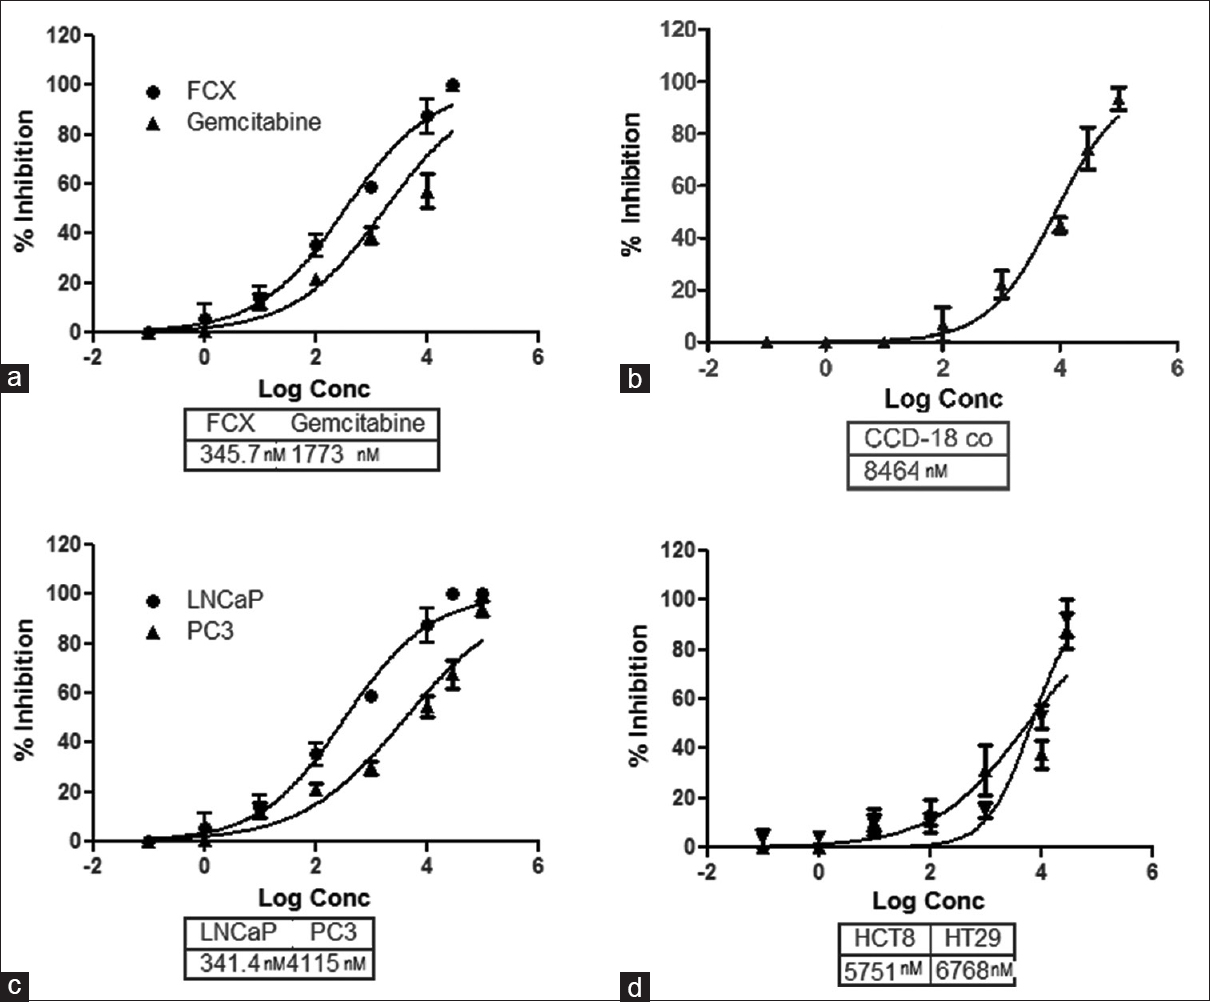 Figure 2: Antiproliferative profile of FCX in prostate and colon cancer cell lines. (a) GI<sub>50</sub> for FCX and gemcitabine in LNCaP cells. (b) GI<sub>50</sub> of FCX in normal nontumorigenic colon cancer cells. (c) GI<sub>50</sub> of FCX in LNCaP and PC3 cells (d) GI<sub>50</sub> of FCX in HCT-8 and HT-29 colon cancer cells